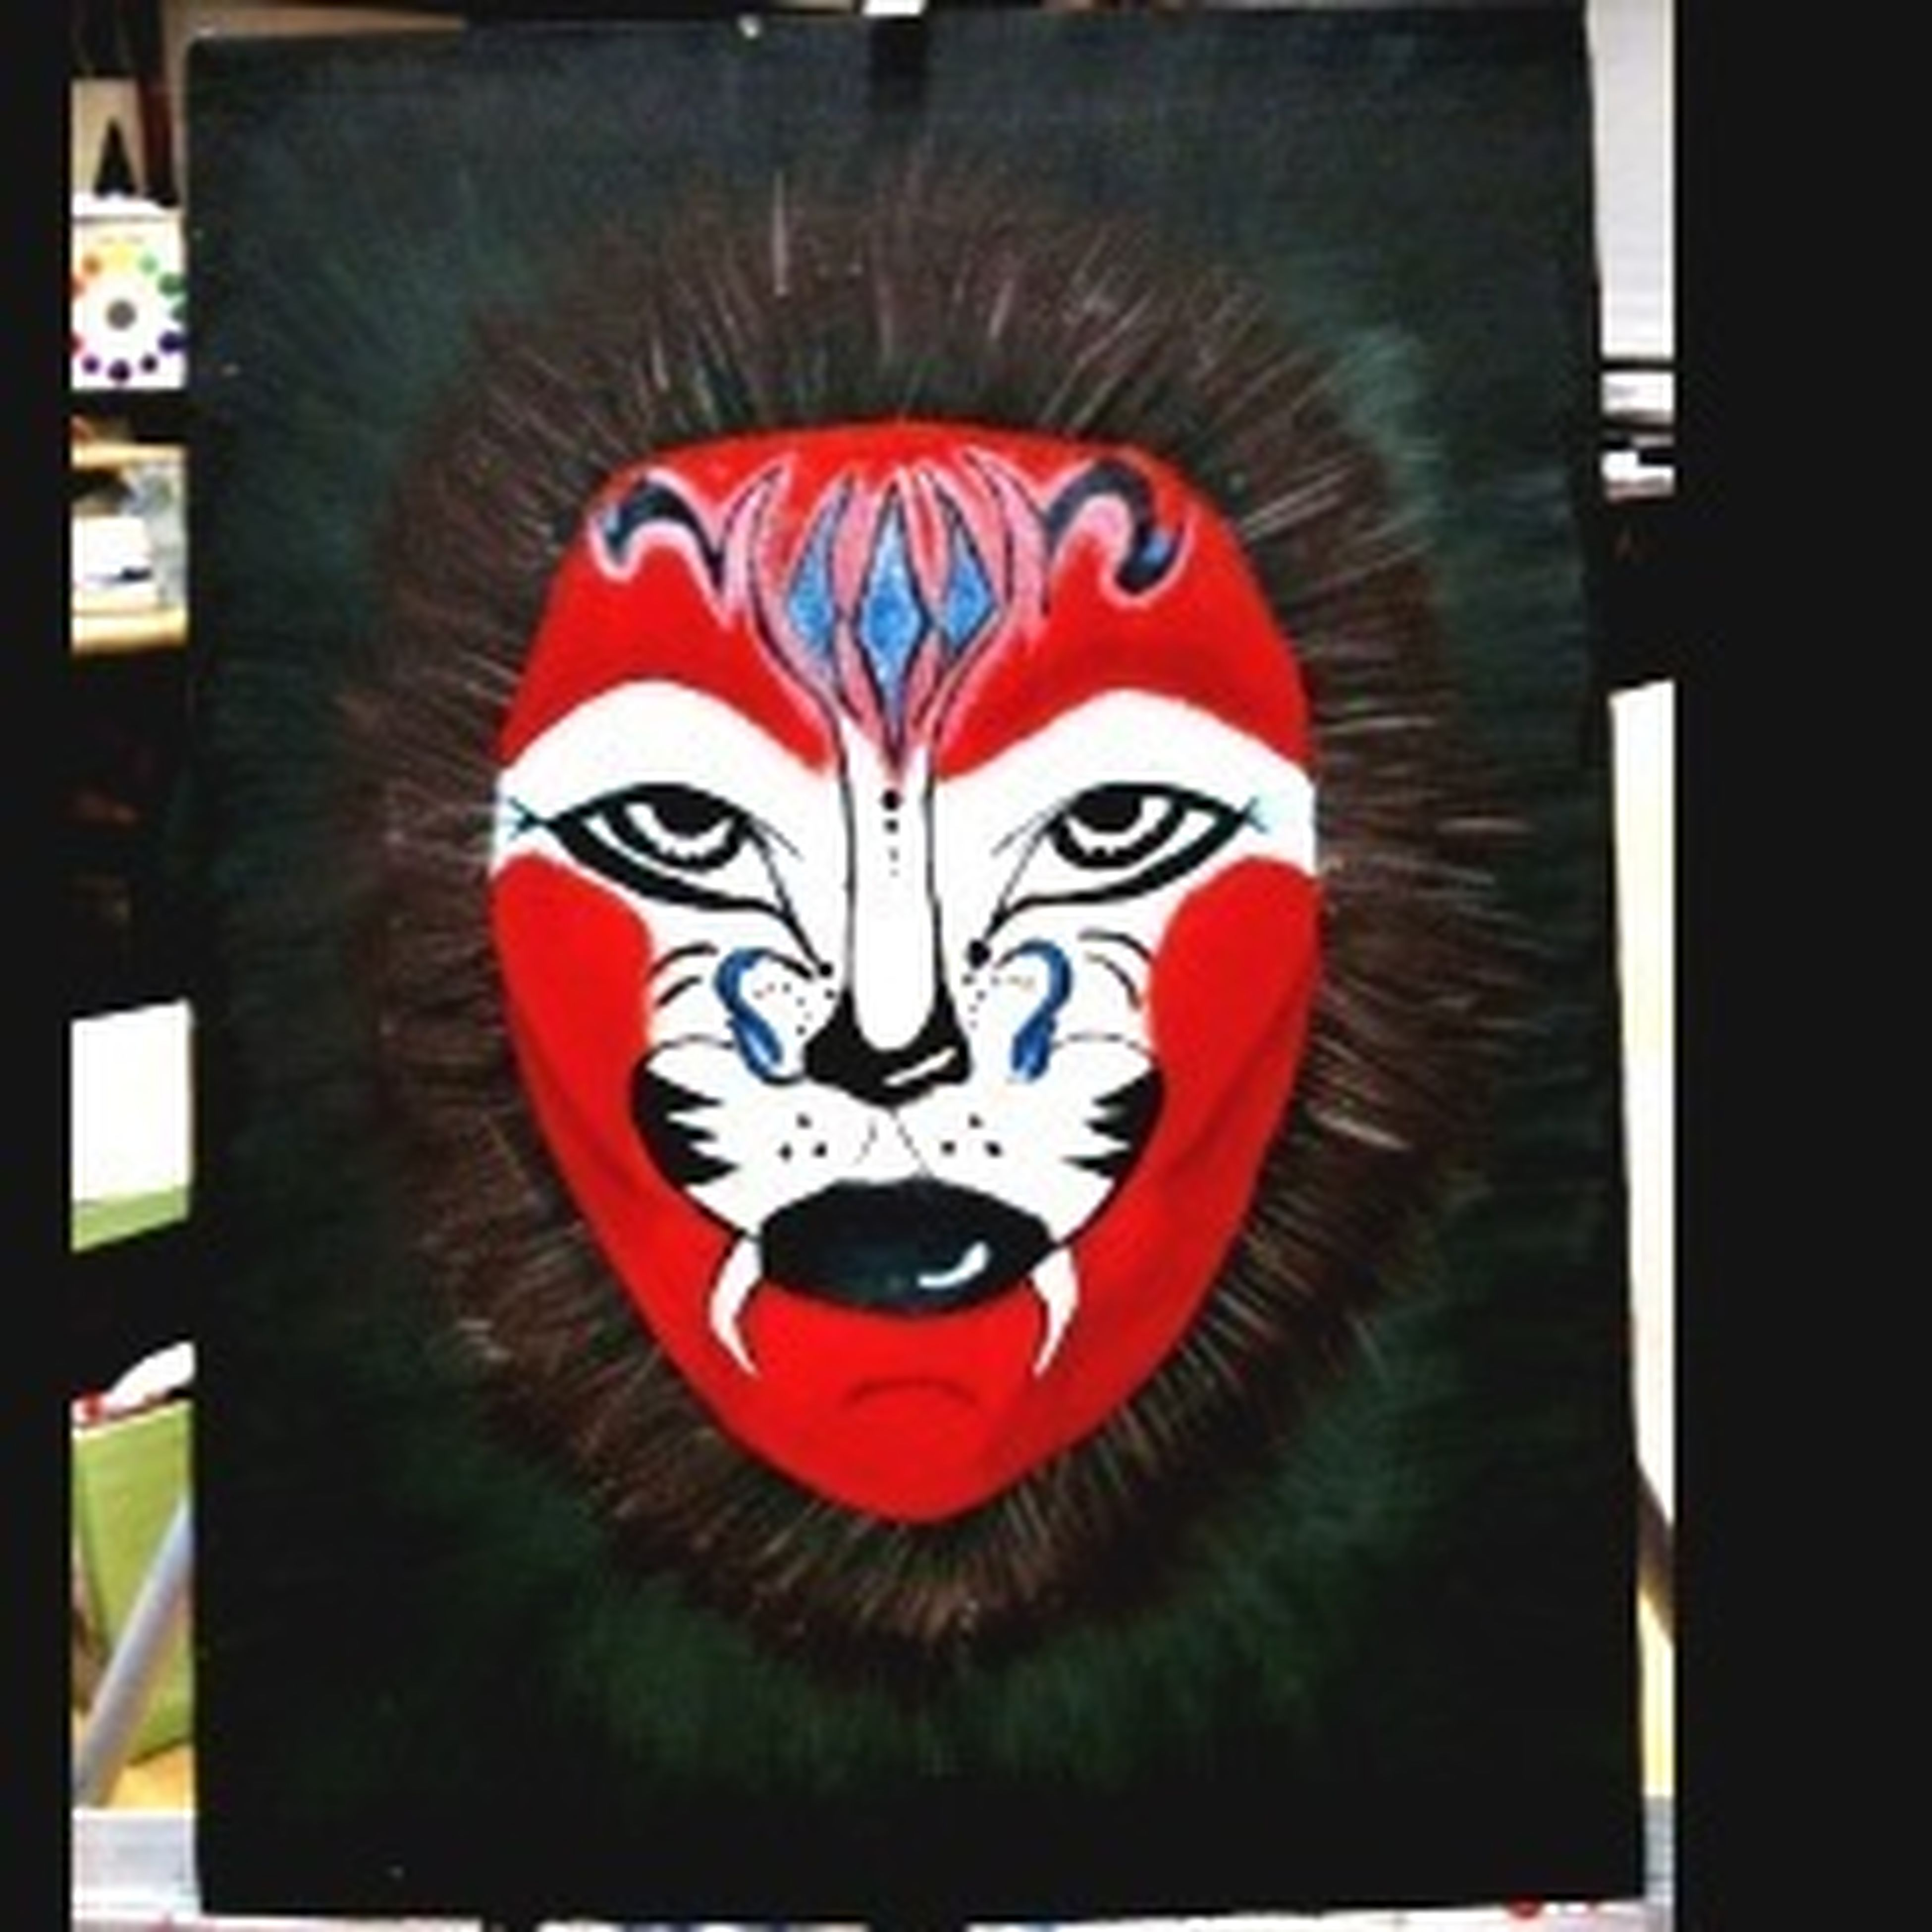 transfer print, creativity, art and craft, art, auto post production filter, close-up, indoors, red, animal representation, multi colored, human representation, no people, graffiti, day, front view, craft, animal head, design, animal themes